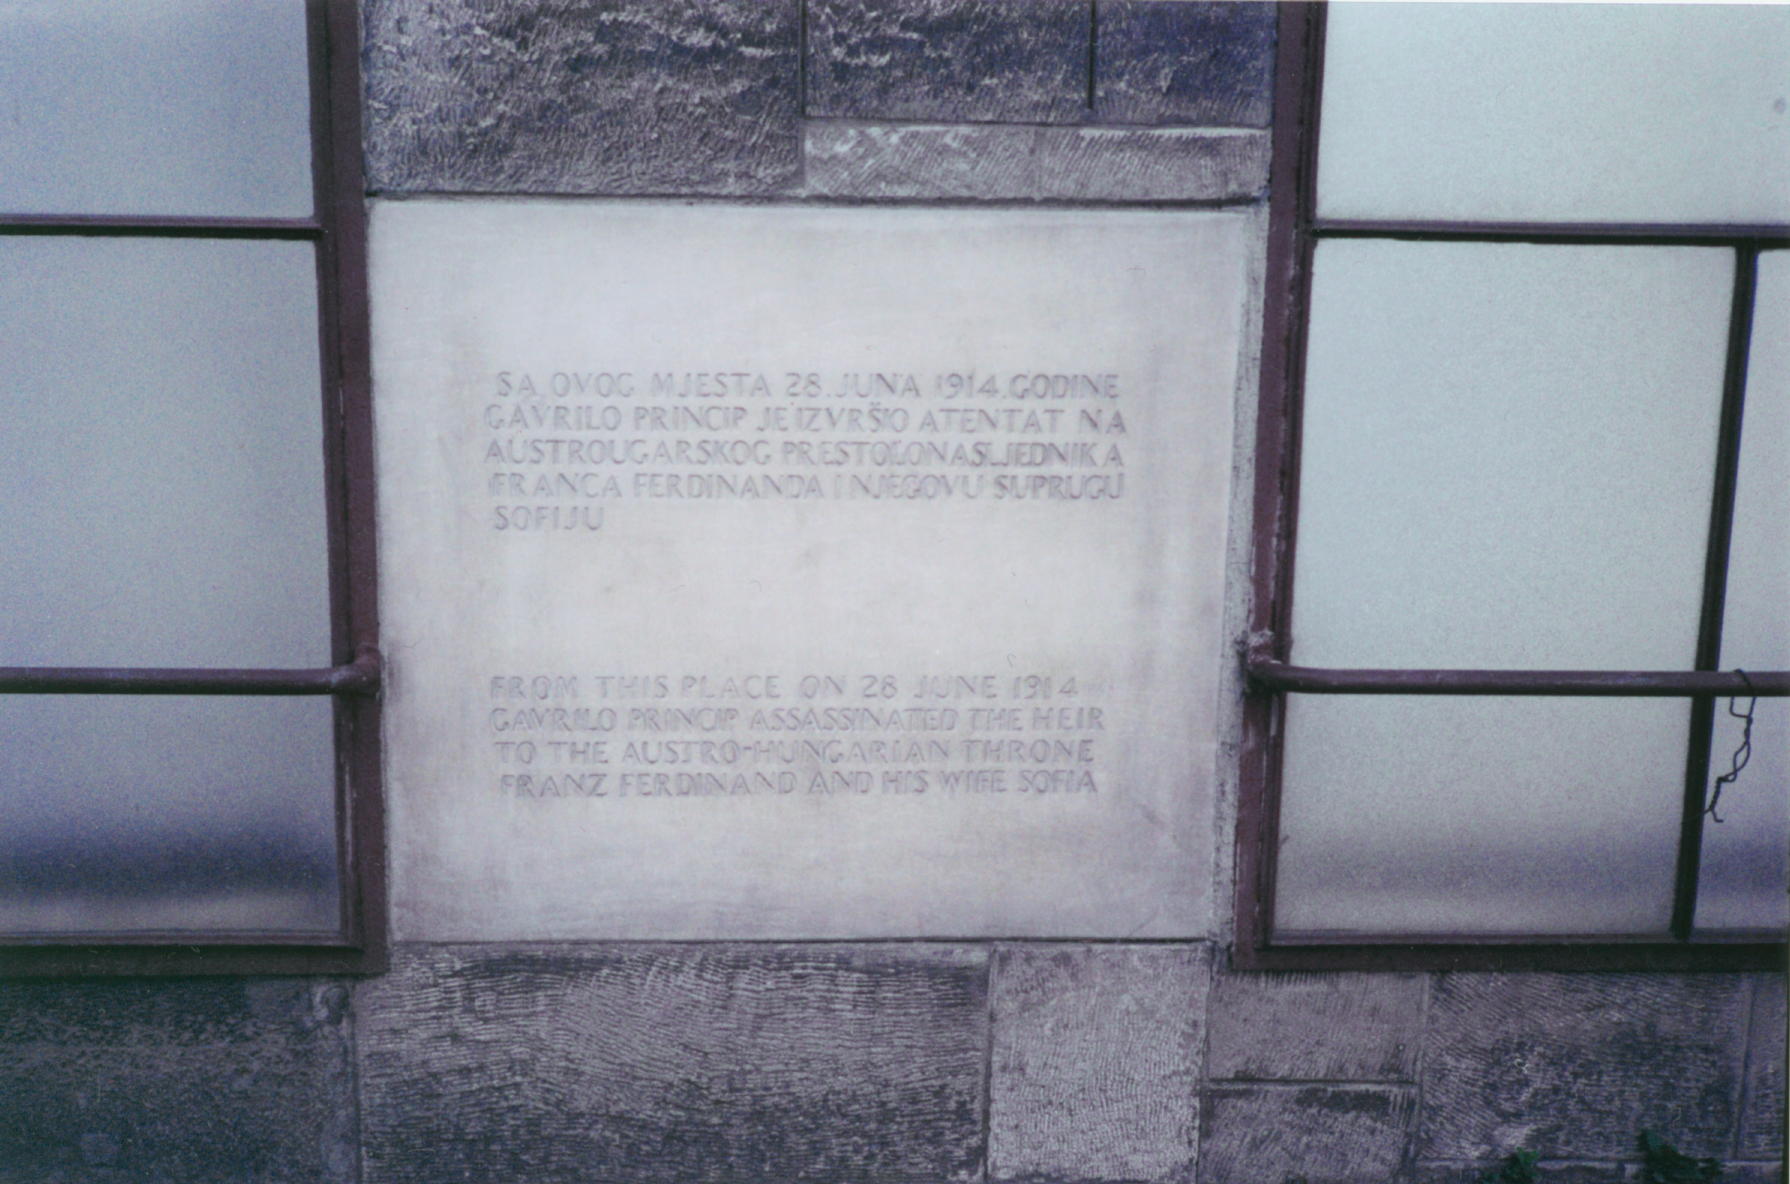 Assassination memorial plaque in Sarajevo